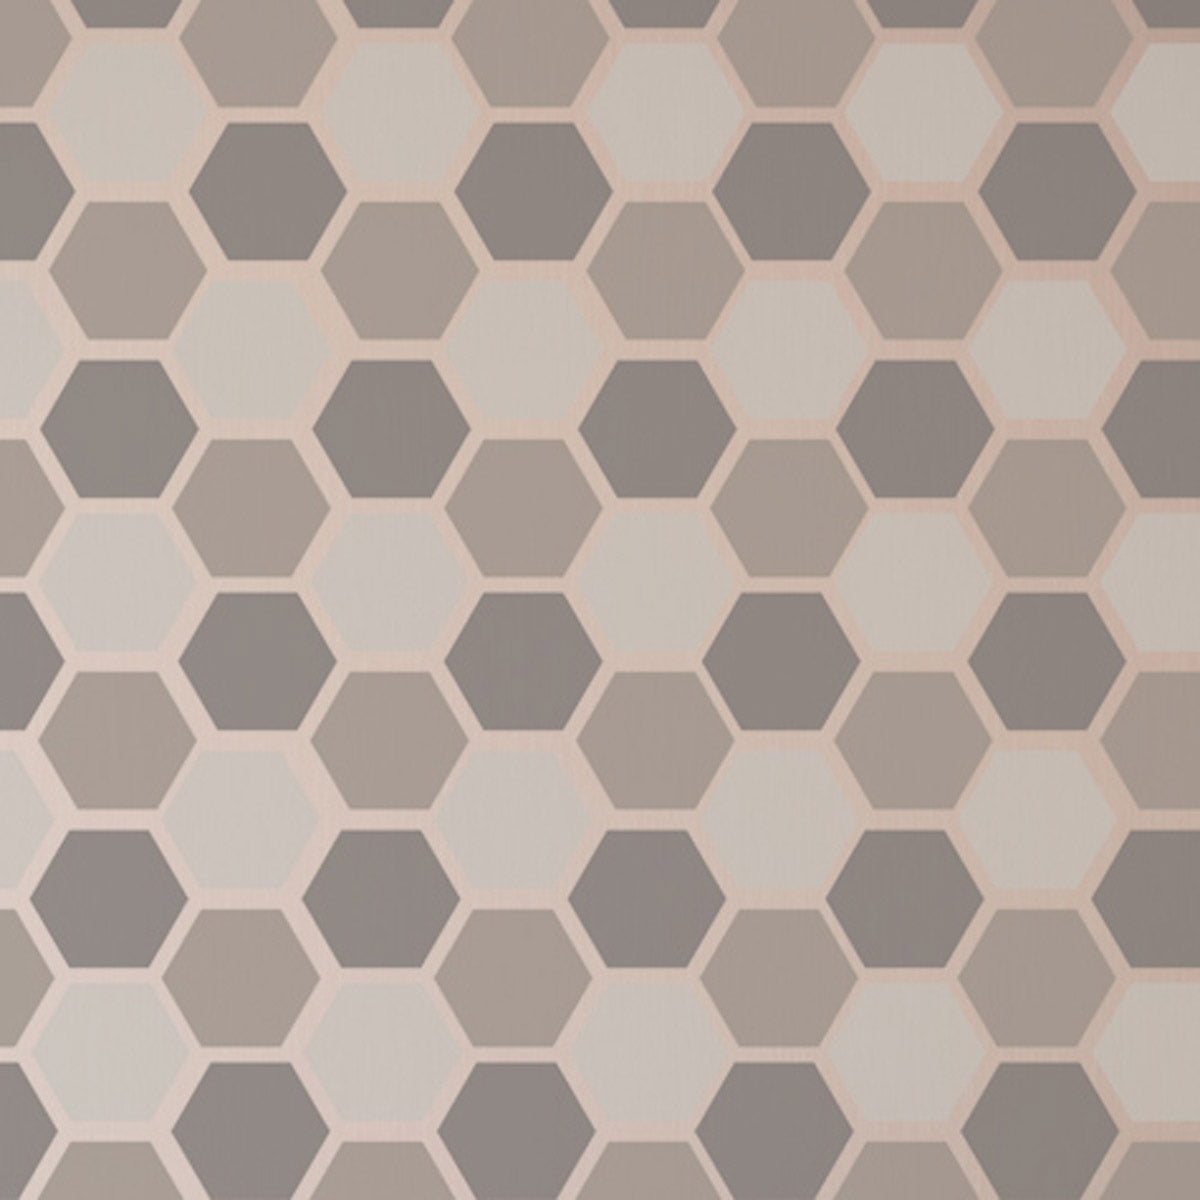 CraftStar Honeycomb Allover Wall Stencil Close Up view